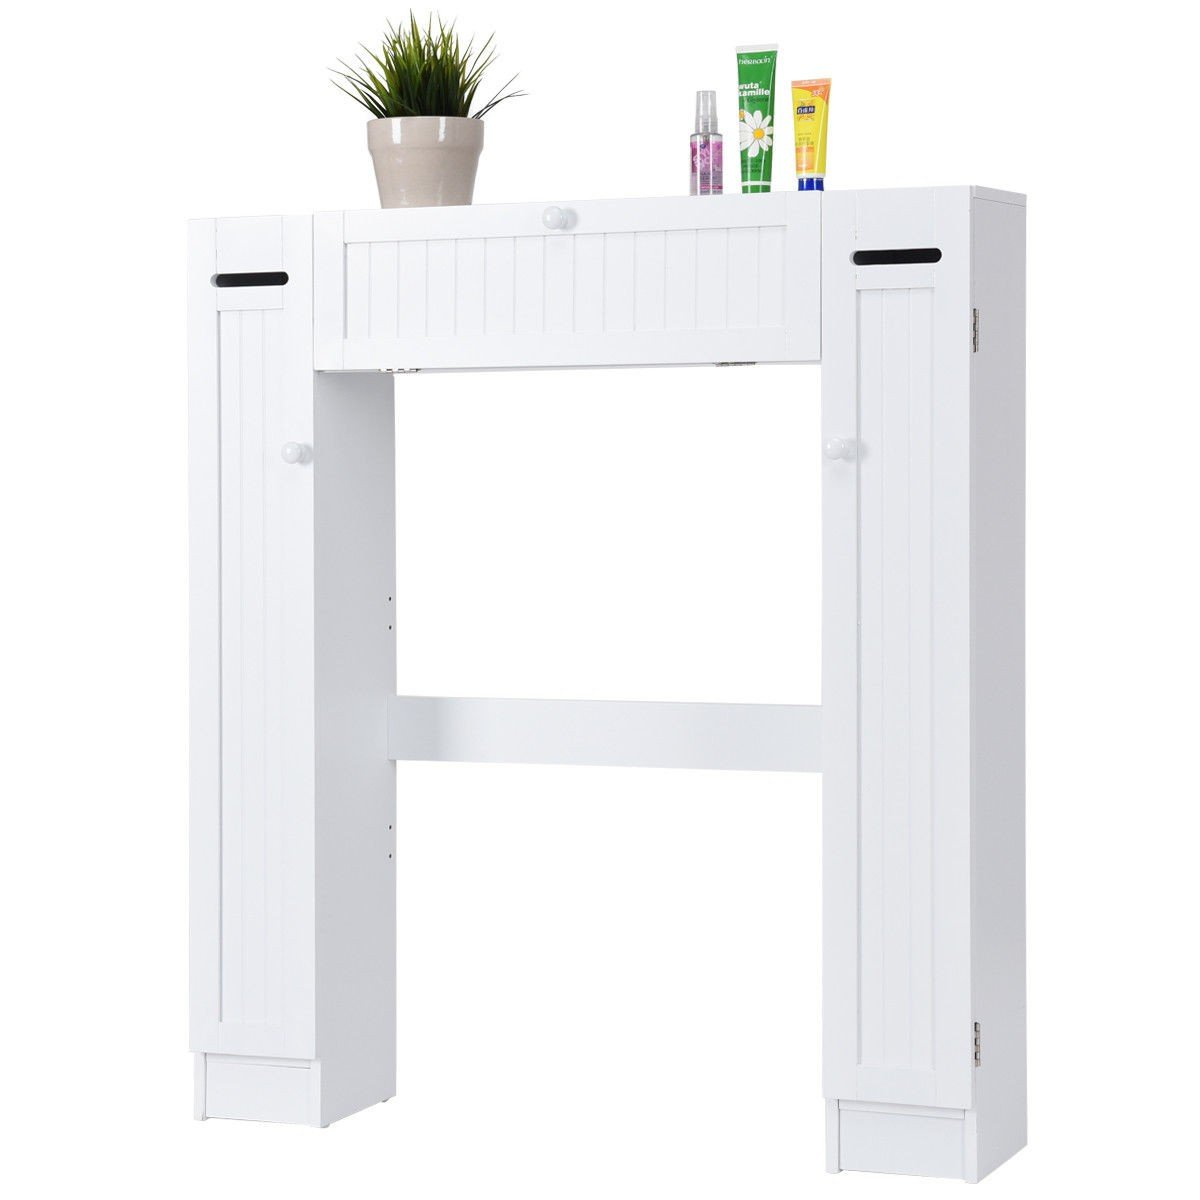 Wooden over the Toilet Storage Cabinet - By Choice Products